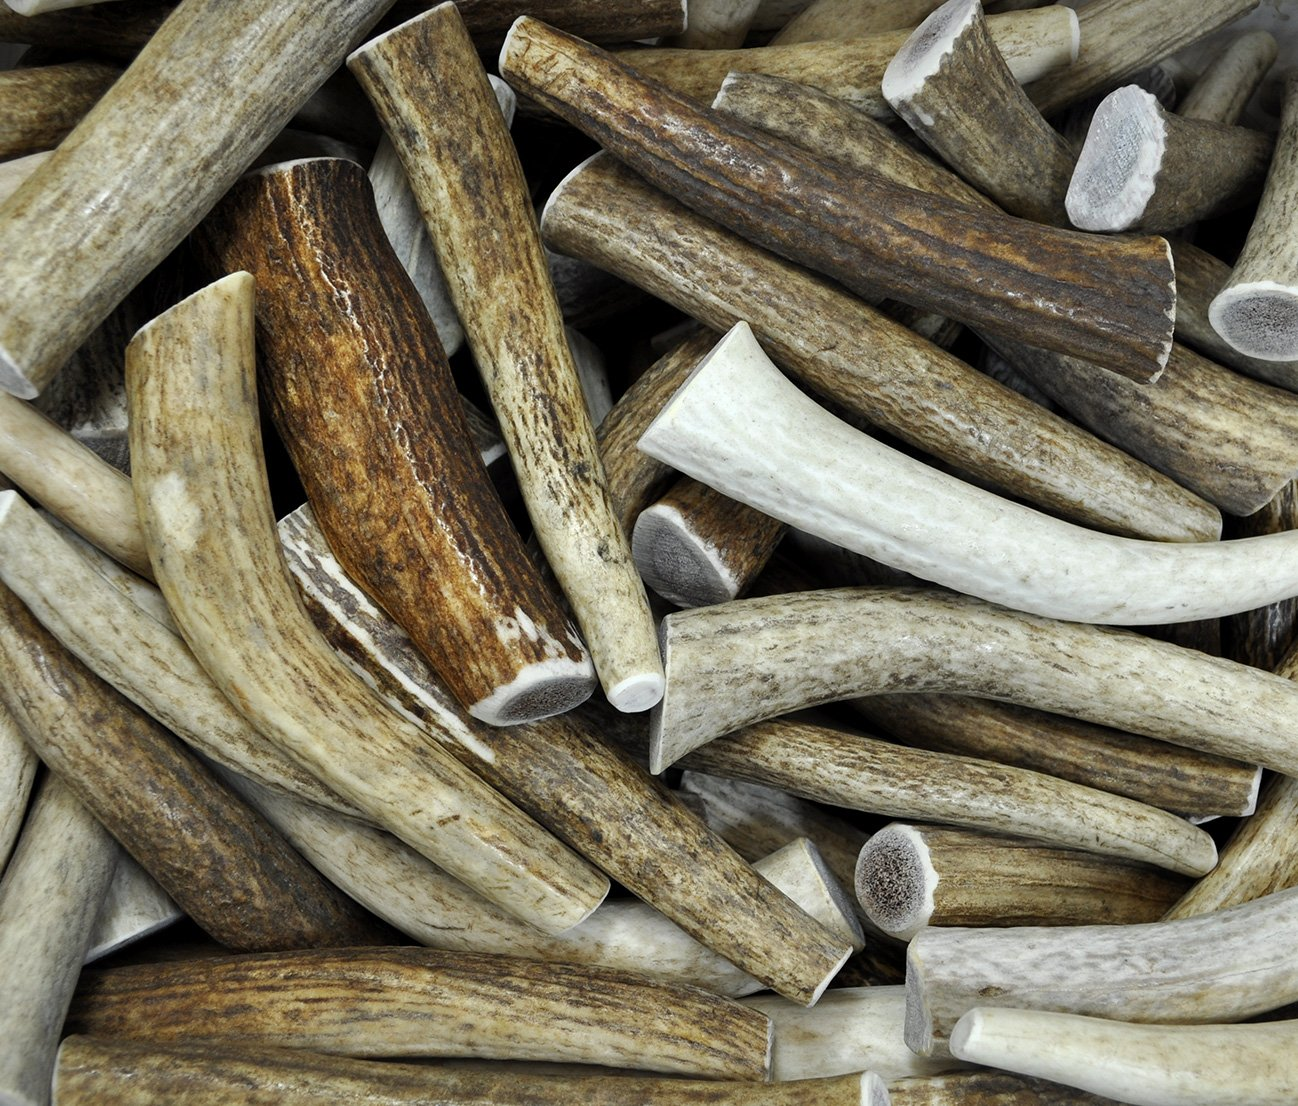 Downtown Pet Supply's, 3 Pound Antler Variety Value Pack, Deer Antler Elk Chews, All Natural Premium Long Lasting Dog Treat Chew Sticks (From the USA!) - Antlers By The Pound